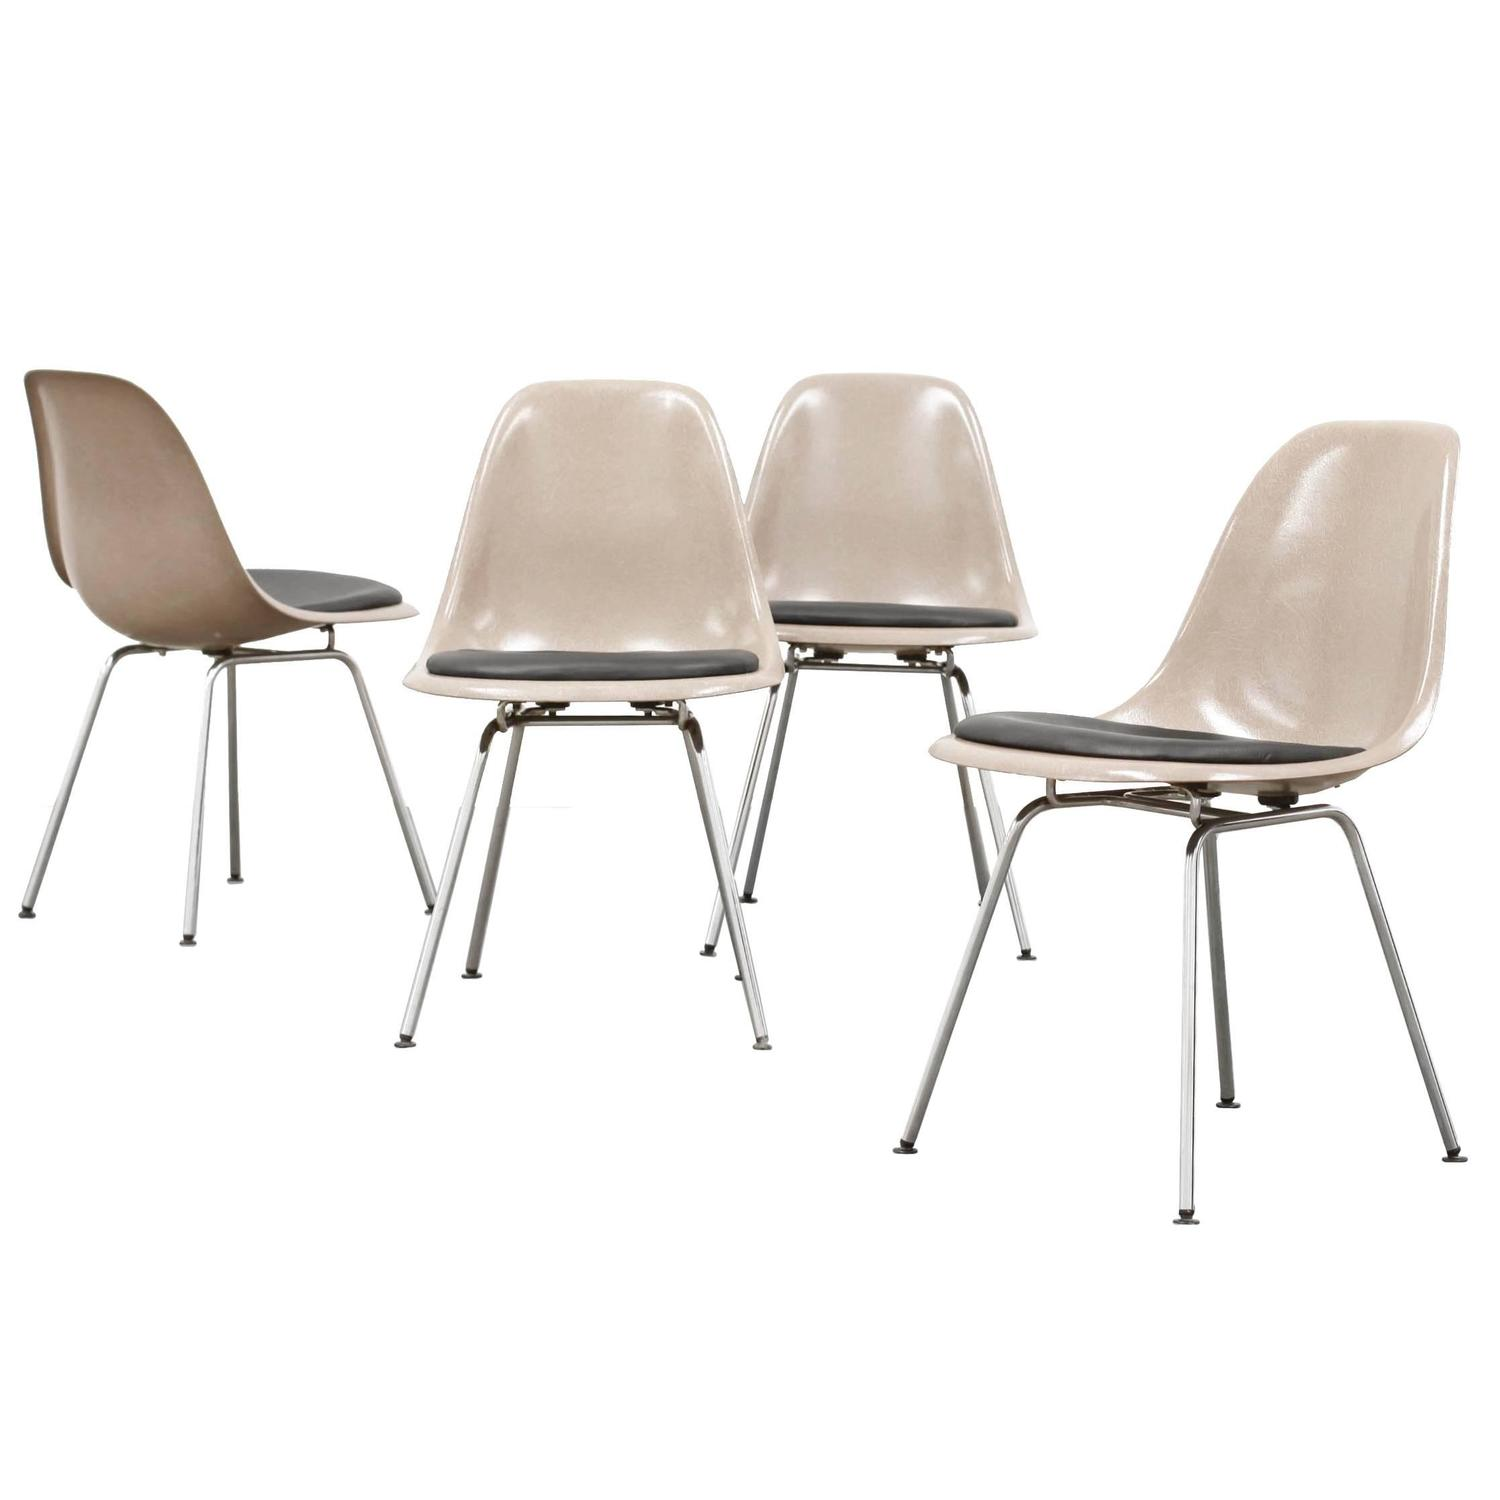 Herman miller dining chairs - Set Of Four Fiberglass Dining Chairs Dsx Ray And Charles For Eames Herman Miller At 1stdibs